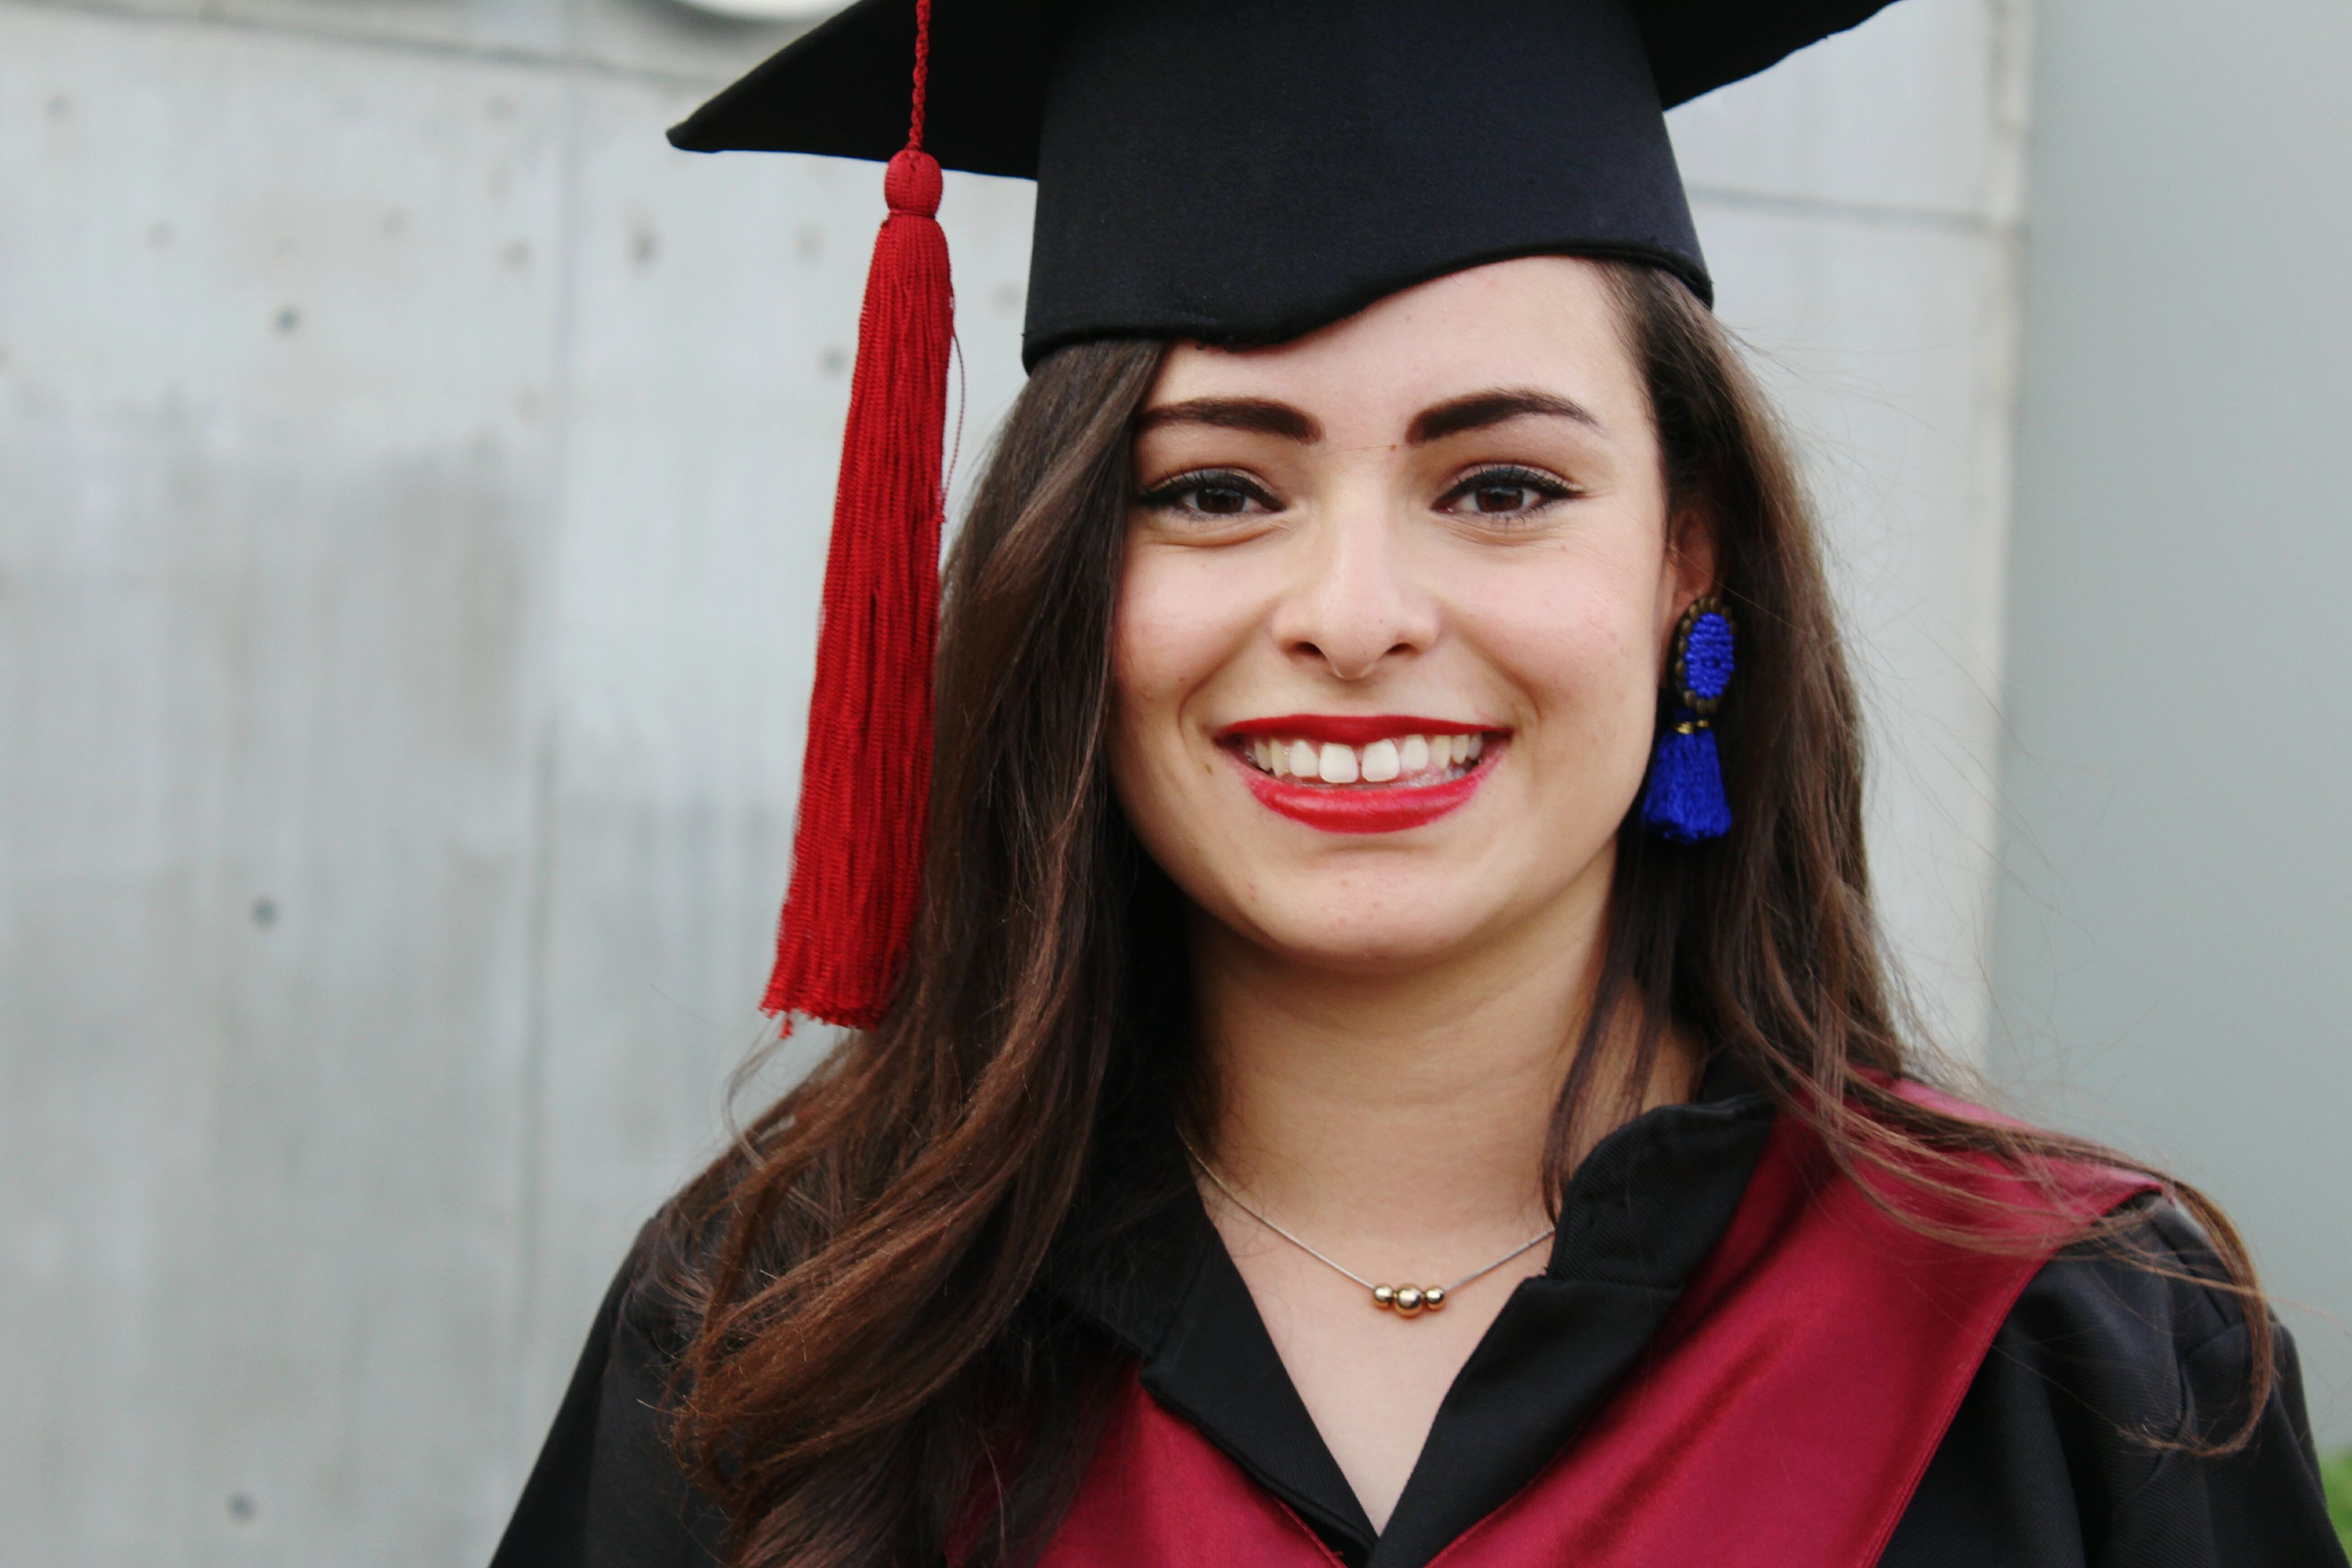 graduation gown, graduation, mortarboard, achievement, young adult, real people, young women, happiness, one person, front view, headshot, education, smiling, standing, celebration, portrait, lifestyles, looking at camera, red, cheerful, beautiful woman, life events, university student, medium-length hair, outdoors, day, close-up